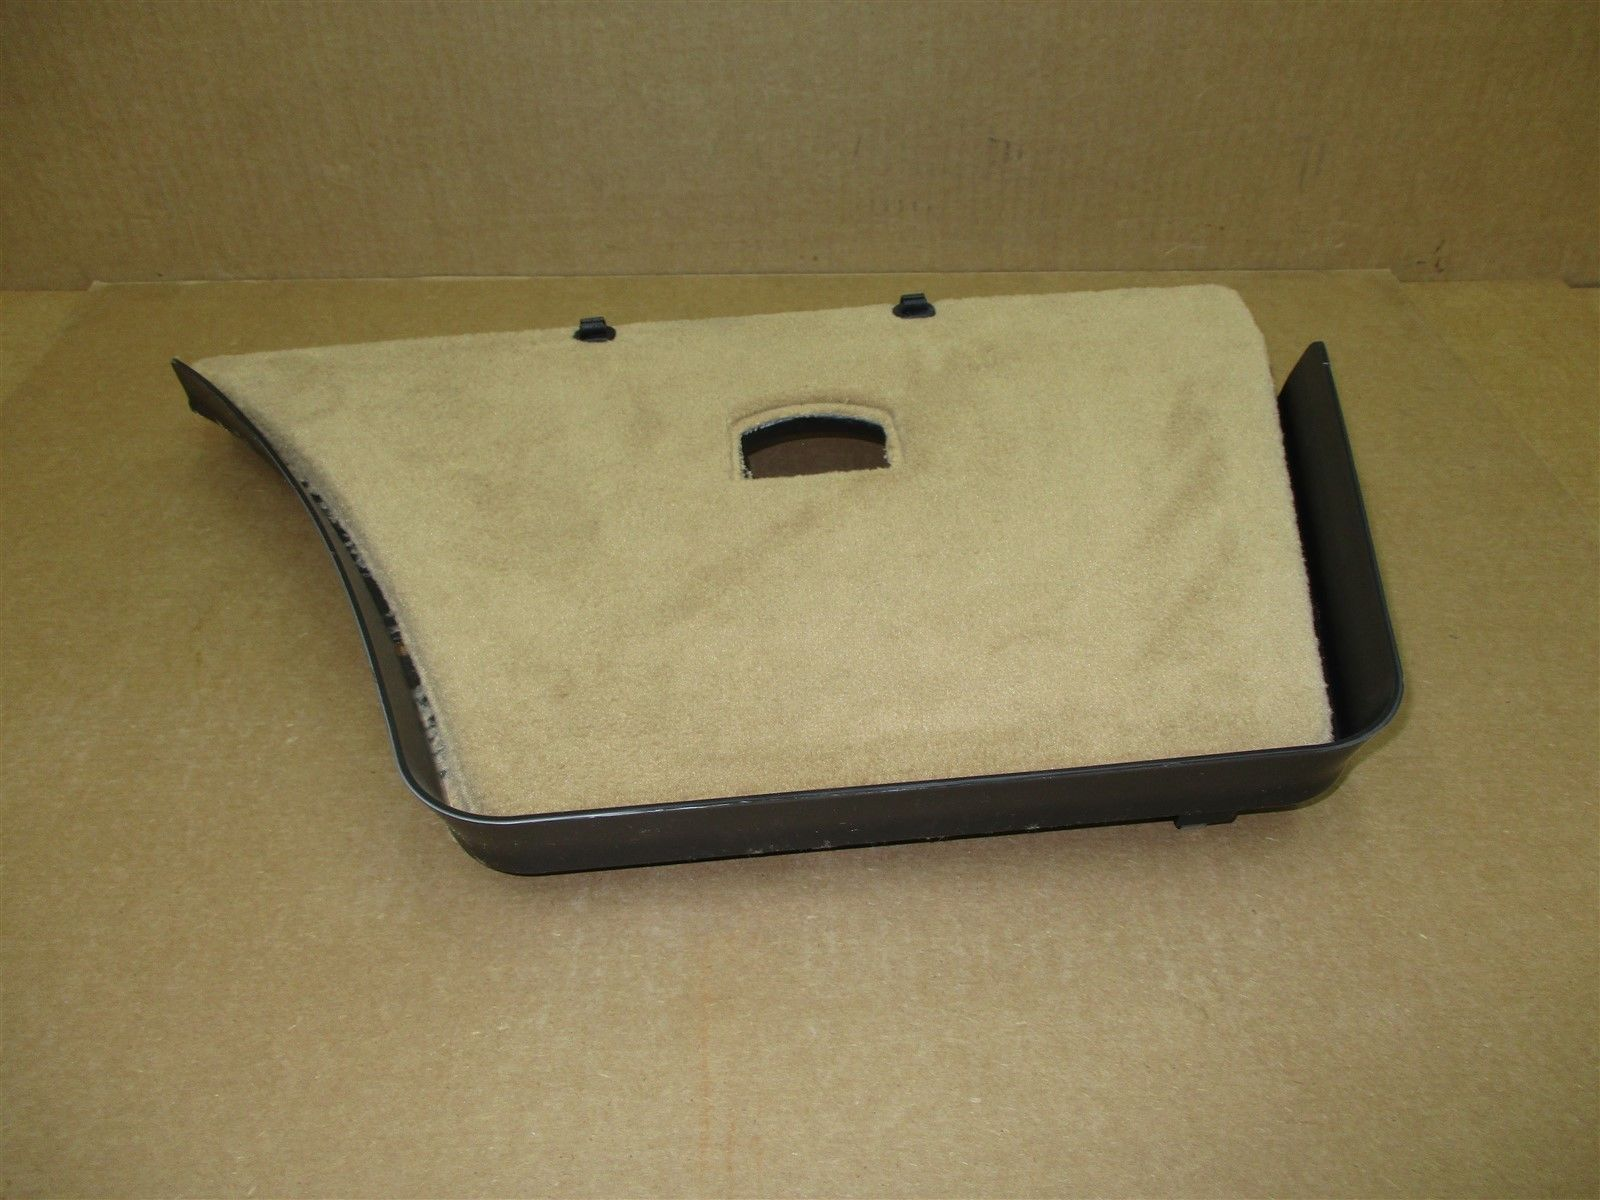 11 Panamera 4 AWD 970 Porsche L REAR FLOOR CARPET TRIM 97055105500 46,434